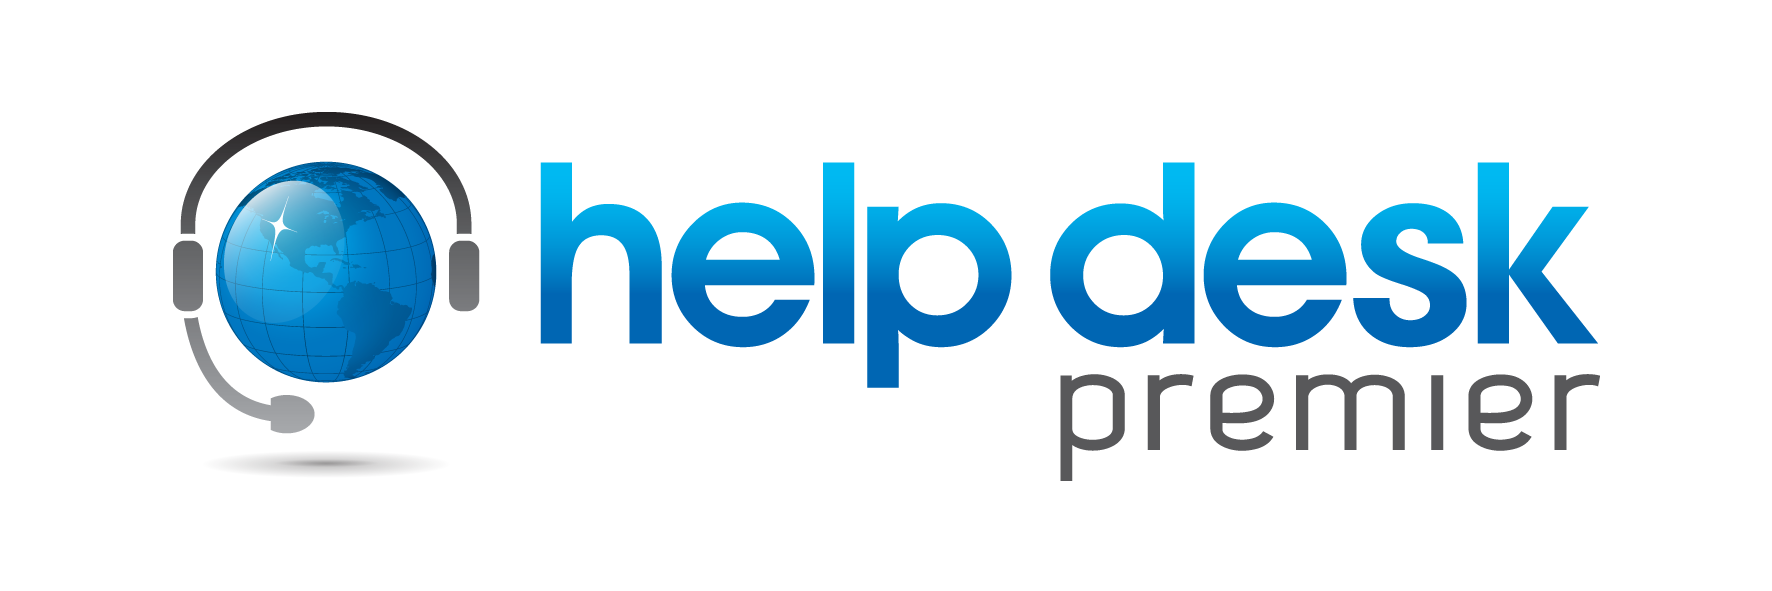 Brightbox Solutions Releases Version 5 0 Of Help Desk Premier